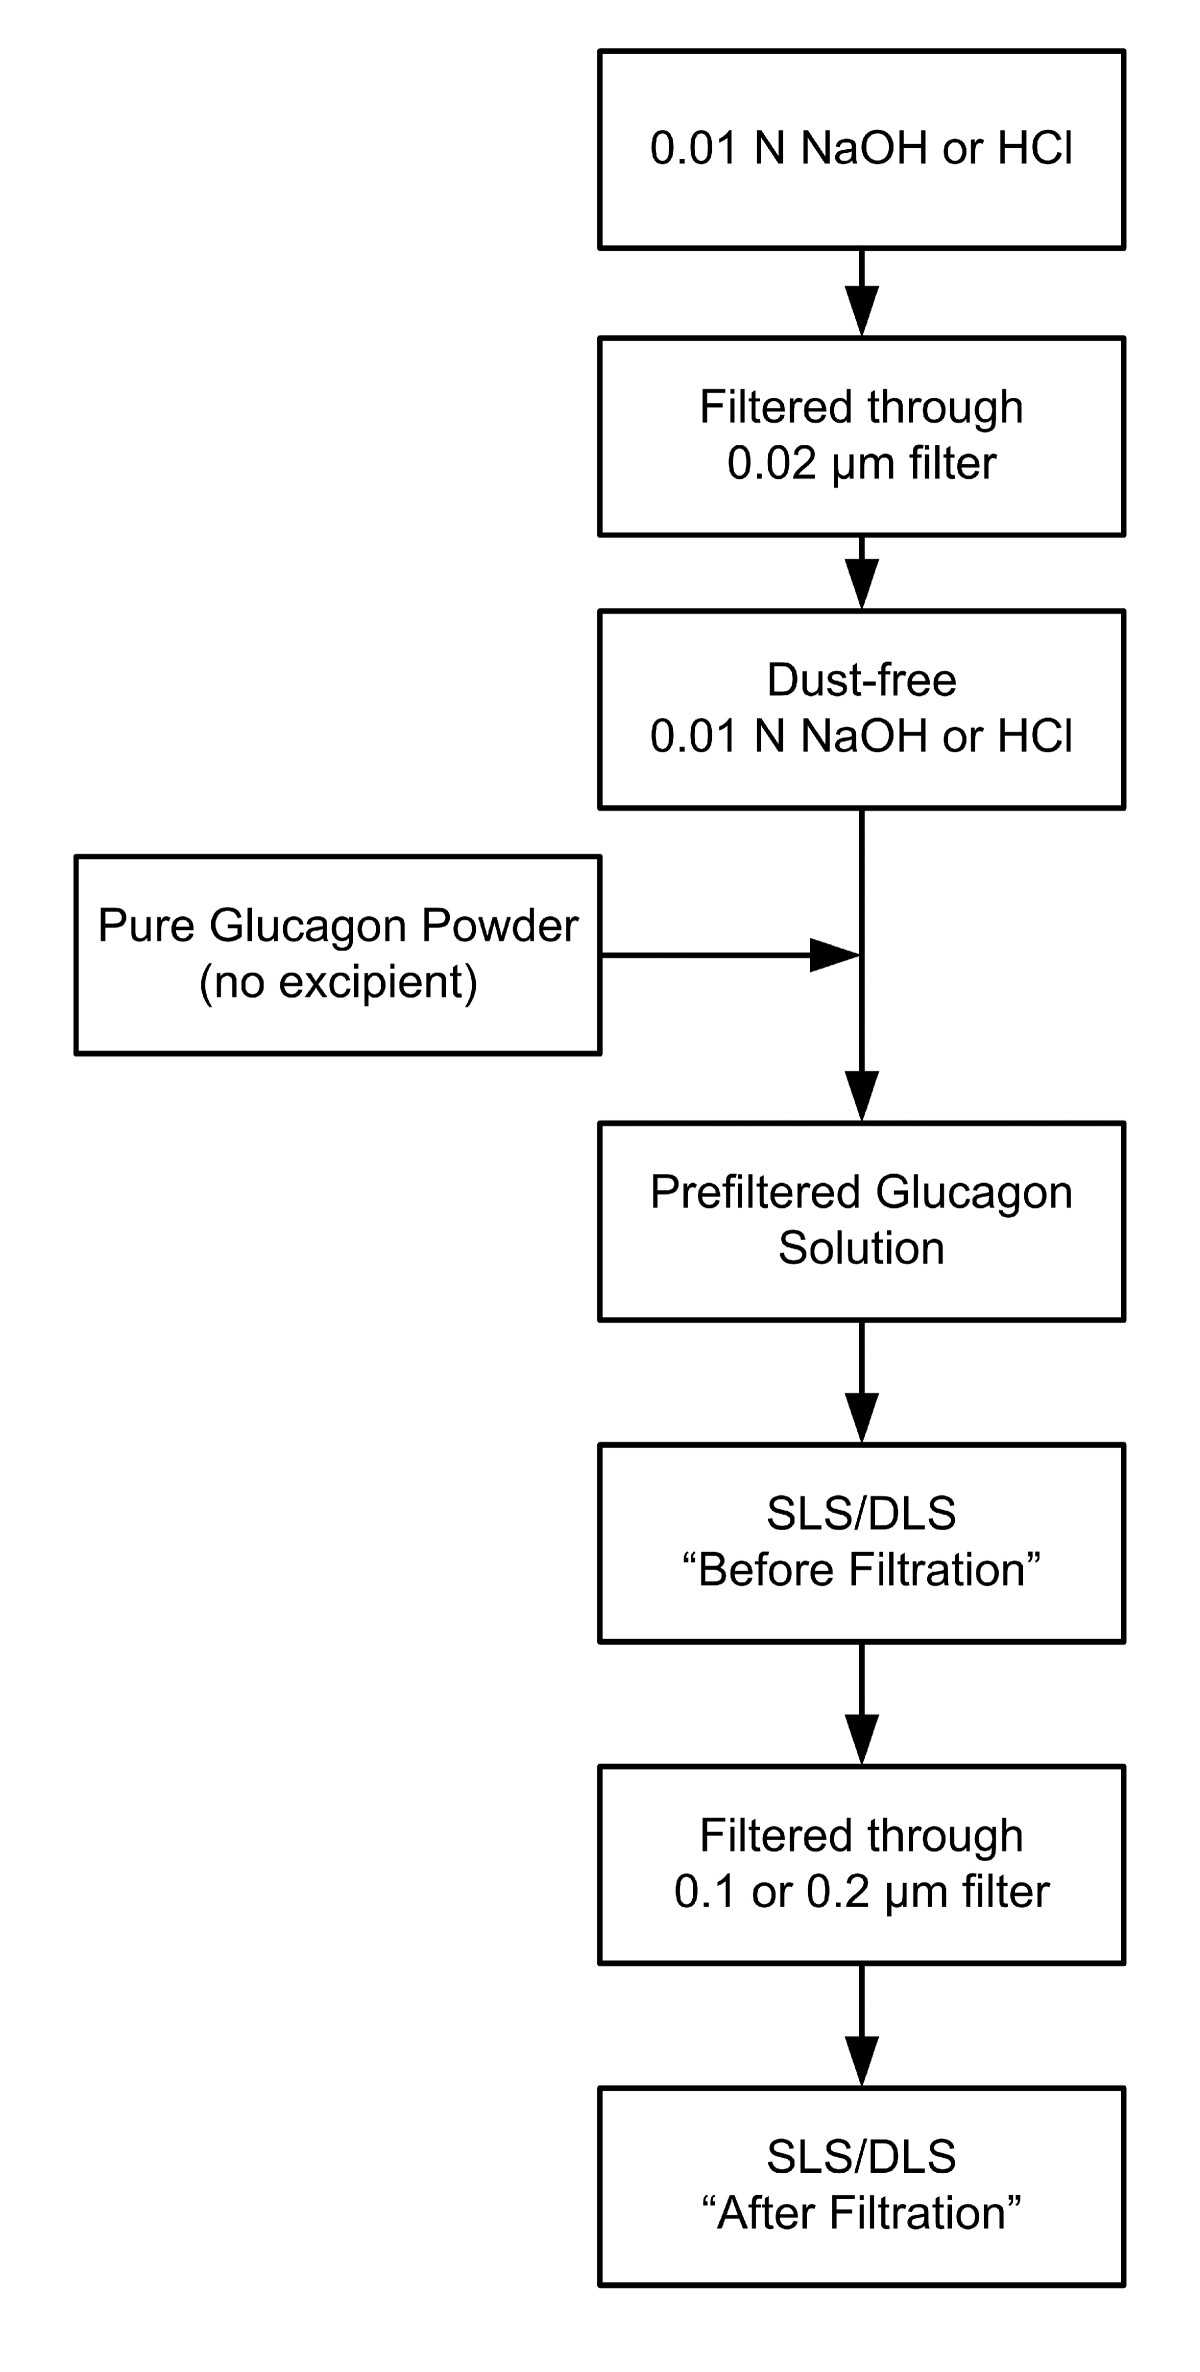 https://static-content.springer.com/image/art%3A10.1186%2F1754-1611-2-10/MediaObjects/13036_2008_Article_19_Fig1_HTML.jpg